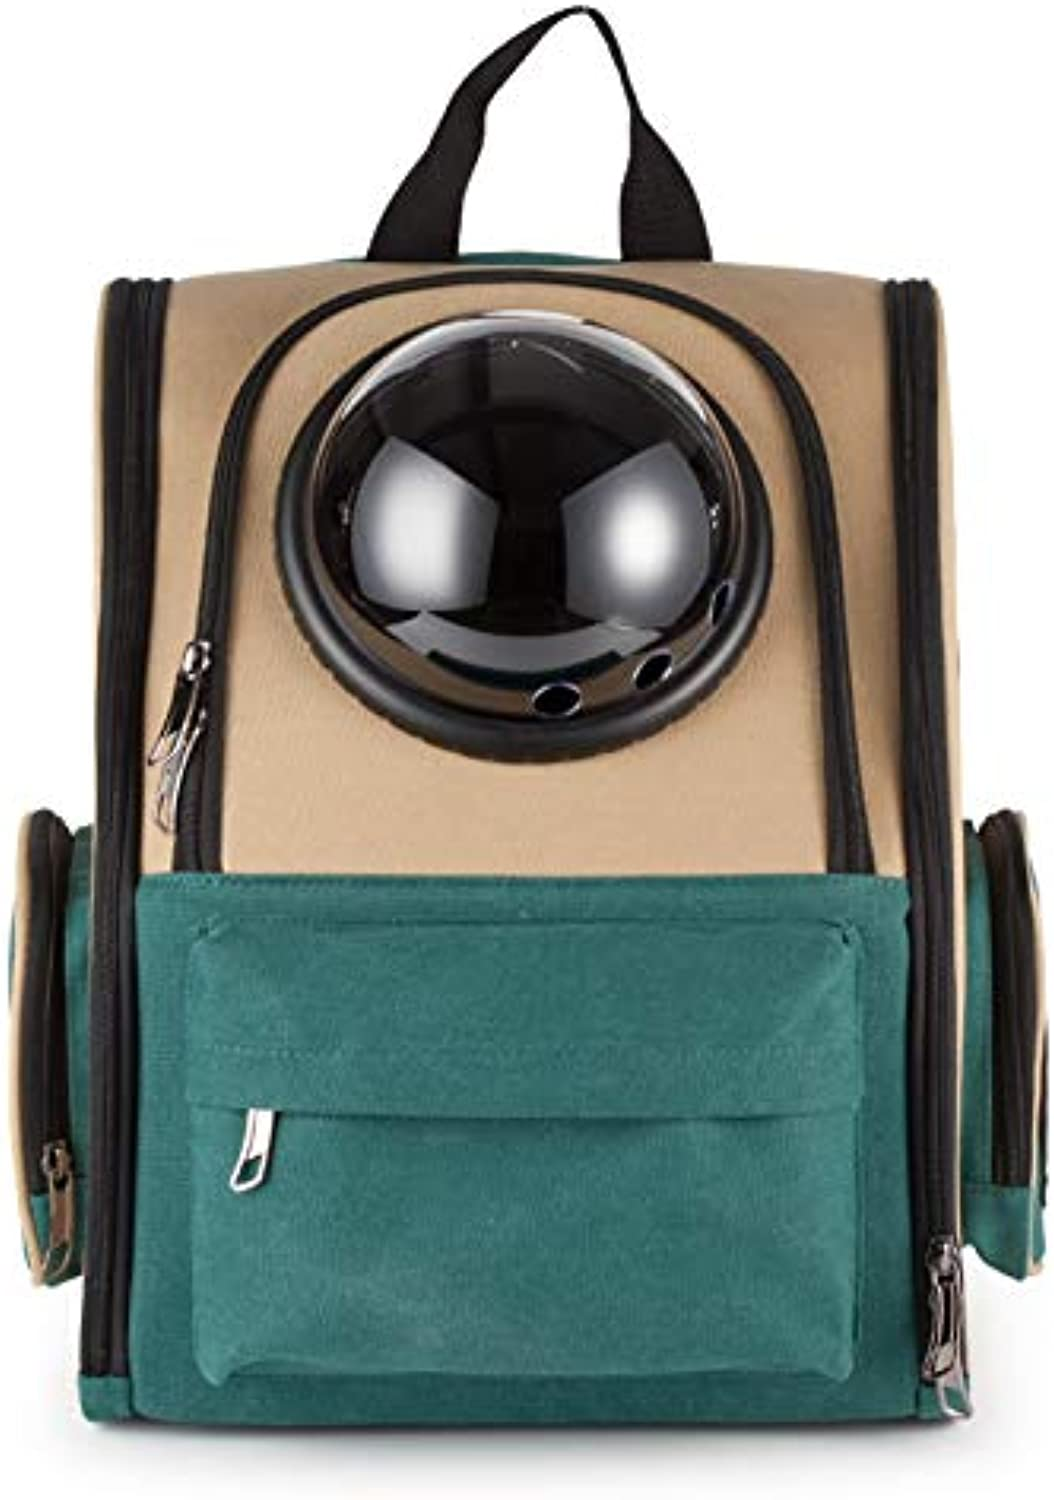 Cat Carrier Backpack Pet Travel Bag Small Dog Space Capsule Knapsack Waterproof Breathable 14.9 x 10.2 x 14.9 ,B